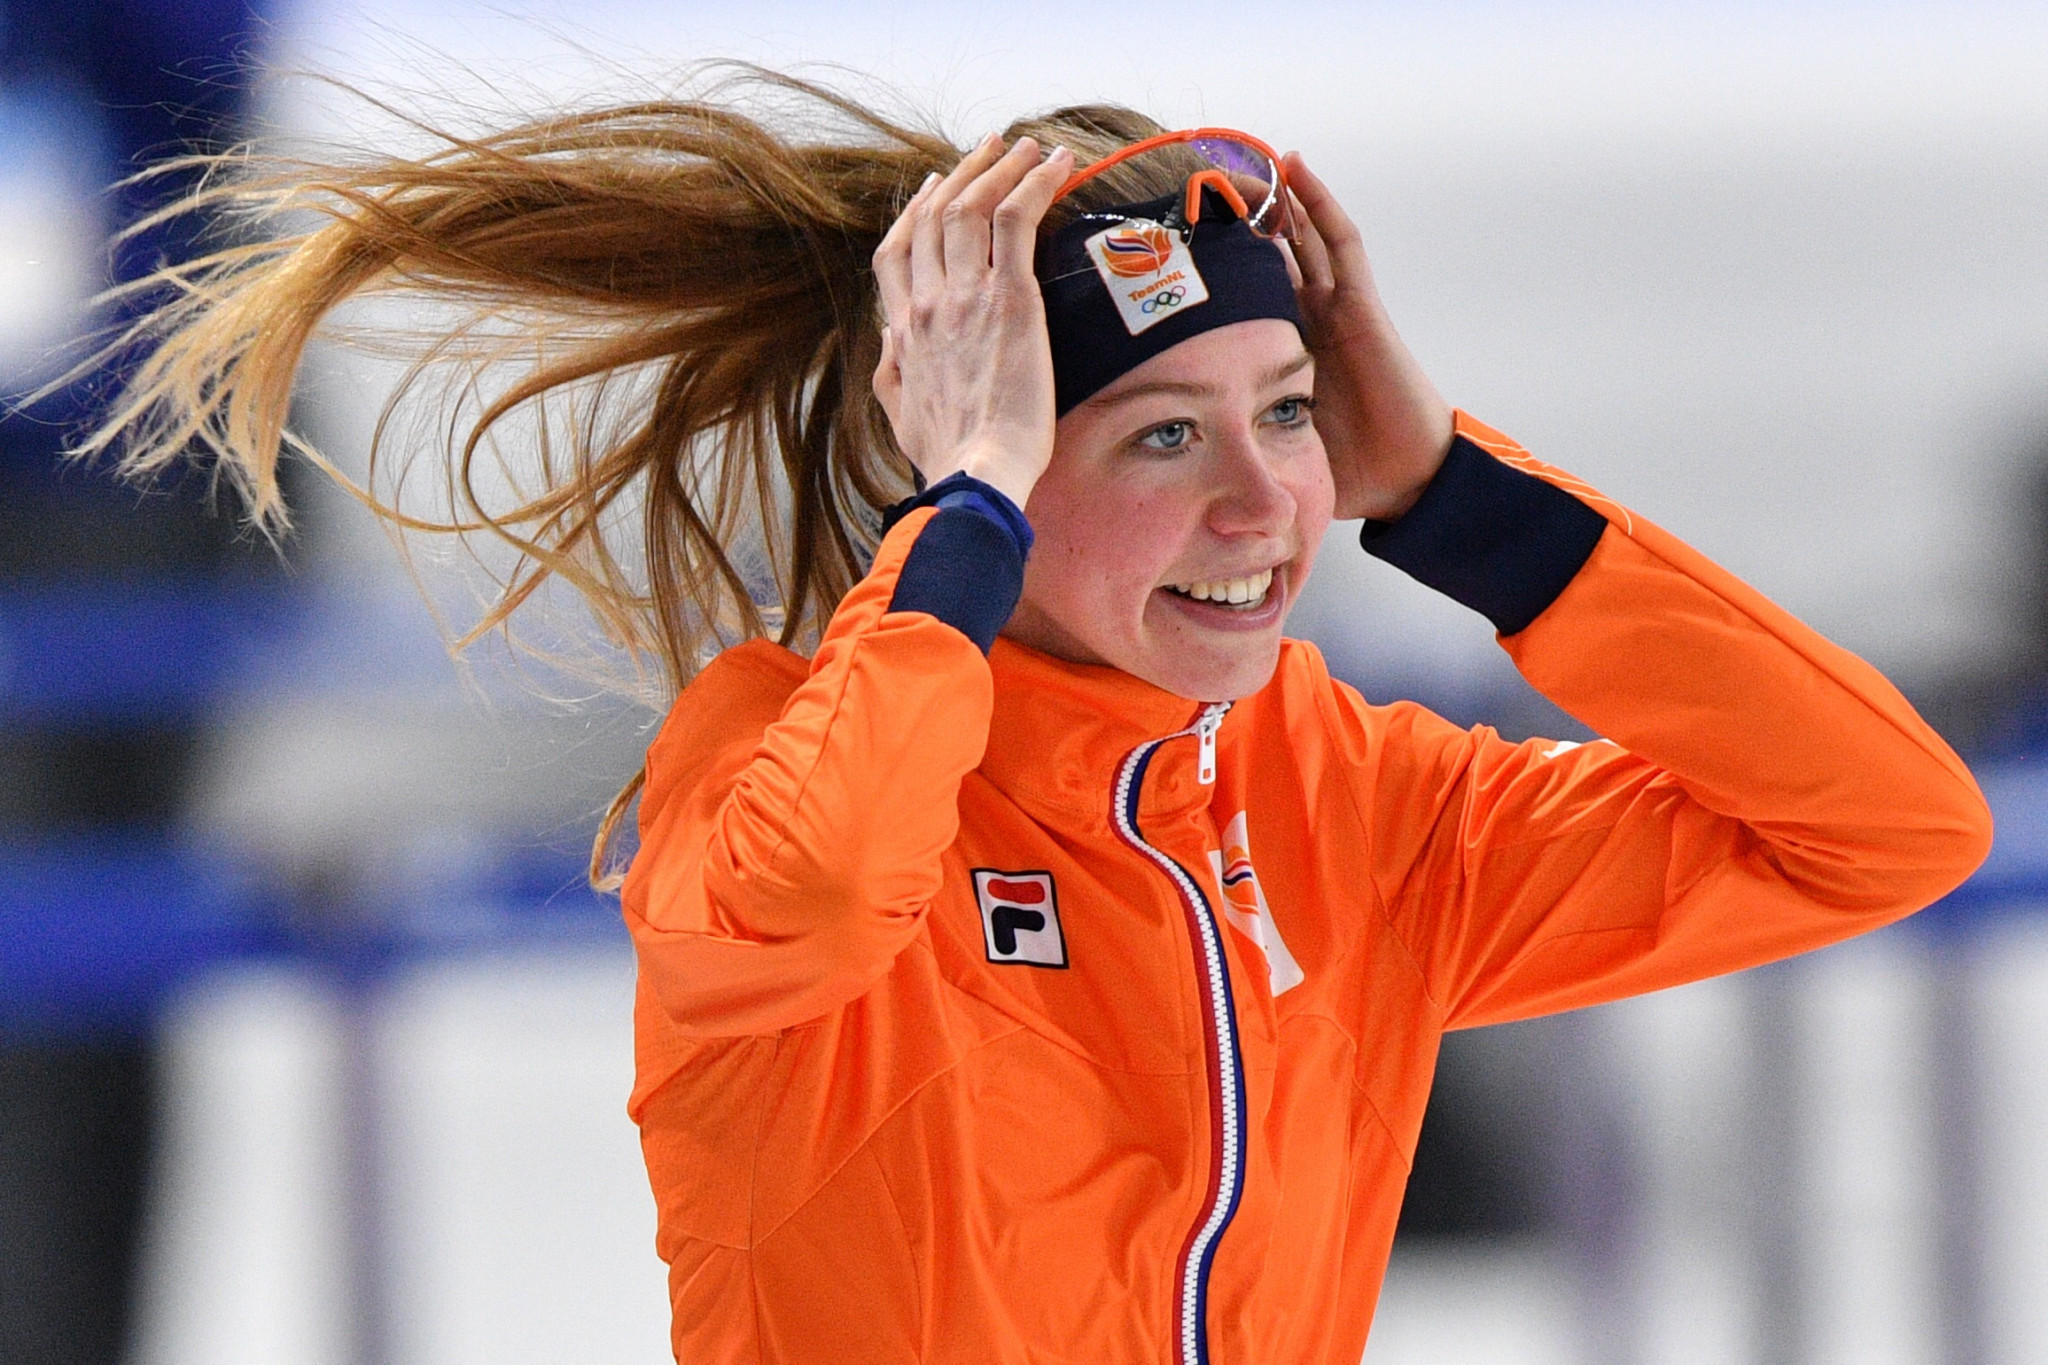 Esmee Visser claimed the women's 5,000 metres speed skating gold medal today as The Netherlands got back to winning ways in the sport at the Pyeongchang 2018 Winter Olympic Games ©Getty Images